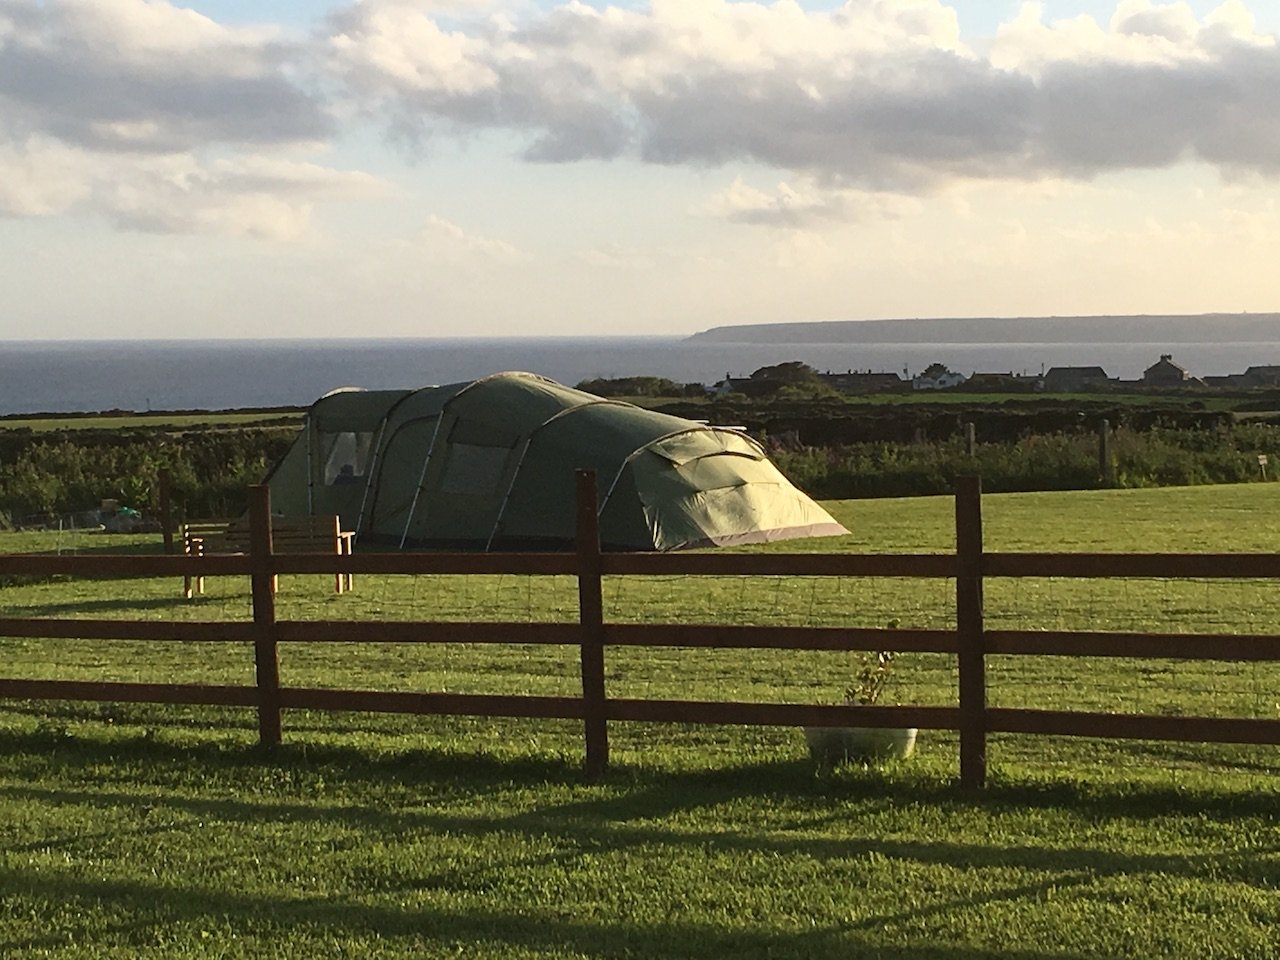 Green tent on campsite